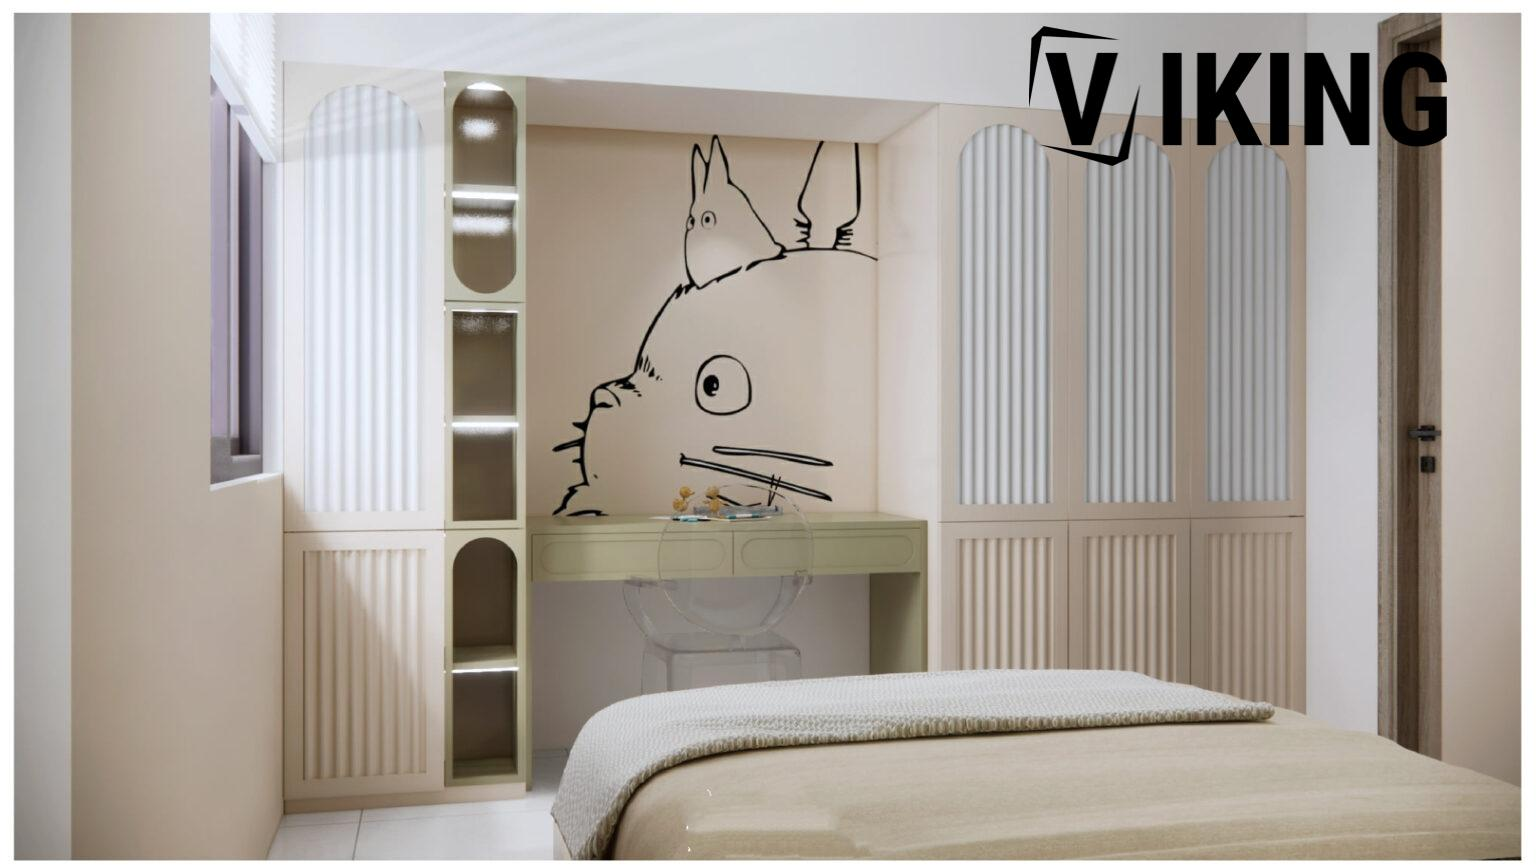 2730.Child Bed Sketchup File free download by Le Nguyen Van Thuyen 5 1536x868 1